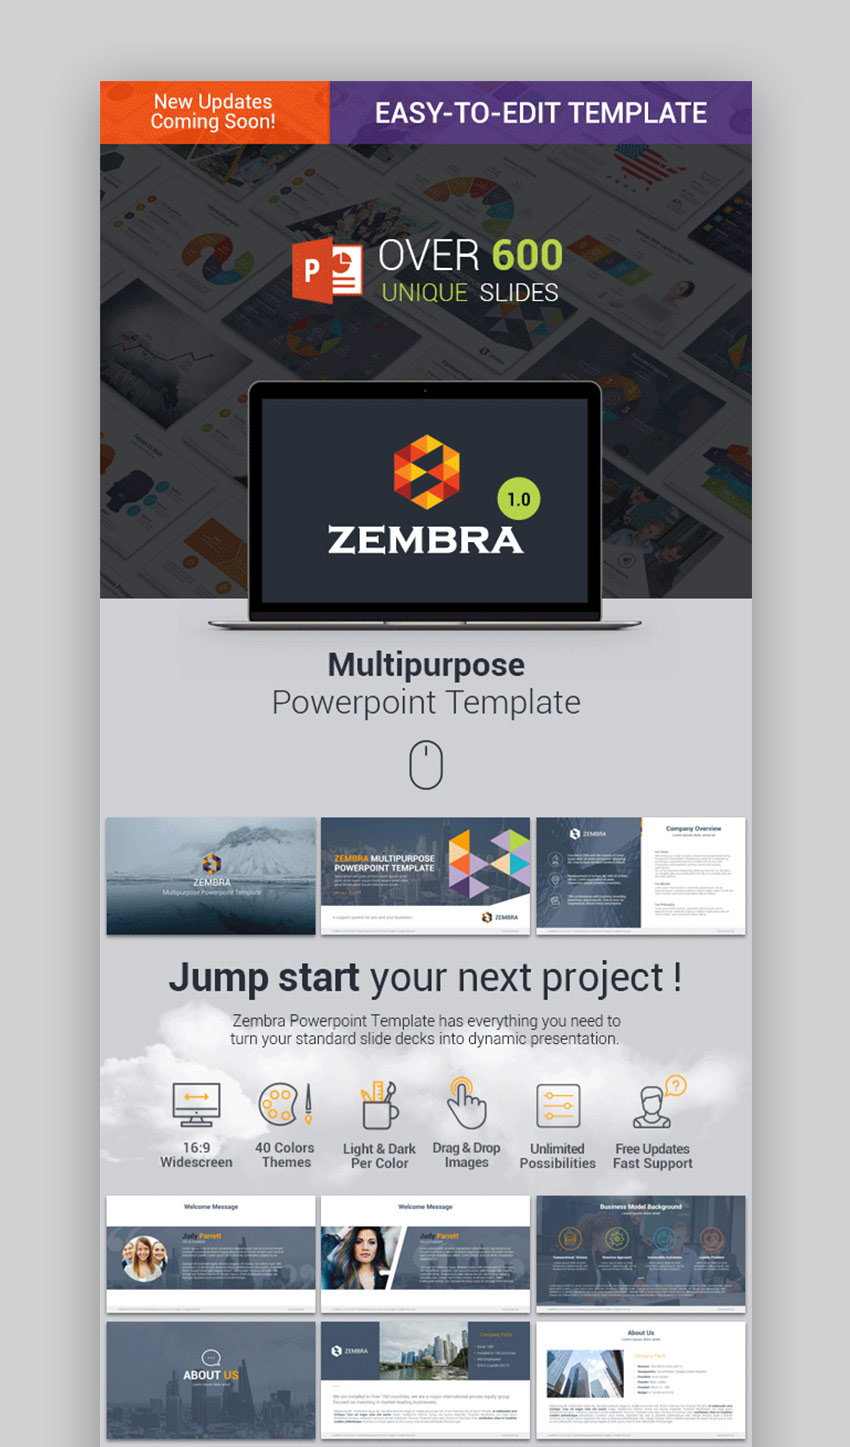 25+ Best Free Professional Business PowerPoint Design Templates